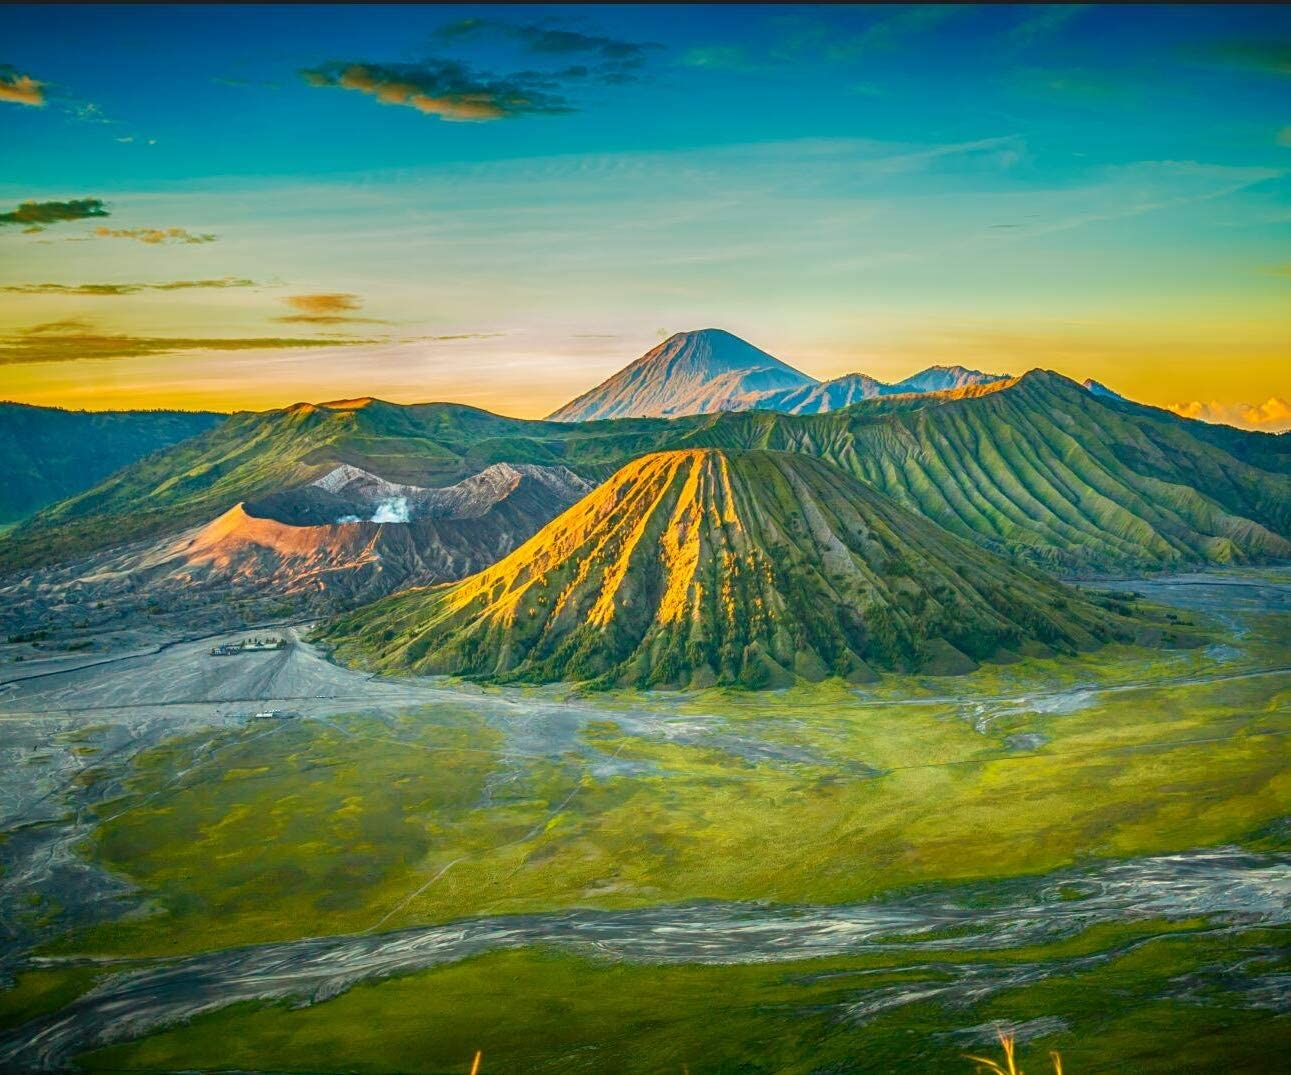 Volcano Background Mountains and Green Plains Volcanic Scenery 1291x1075